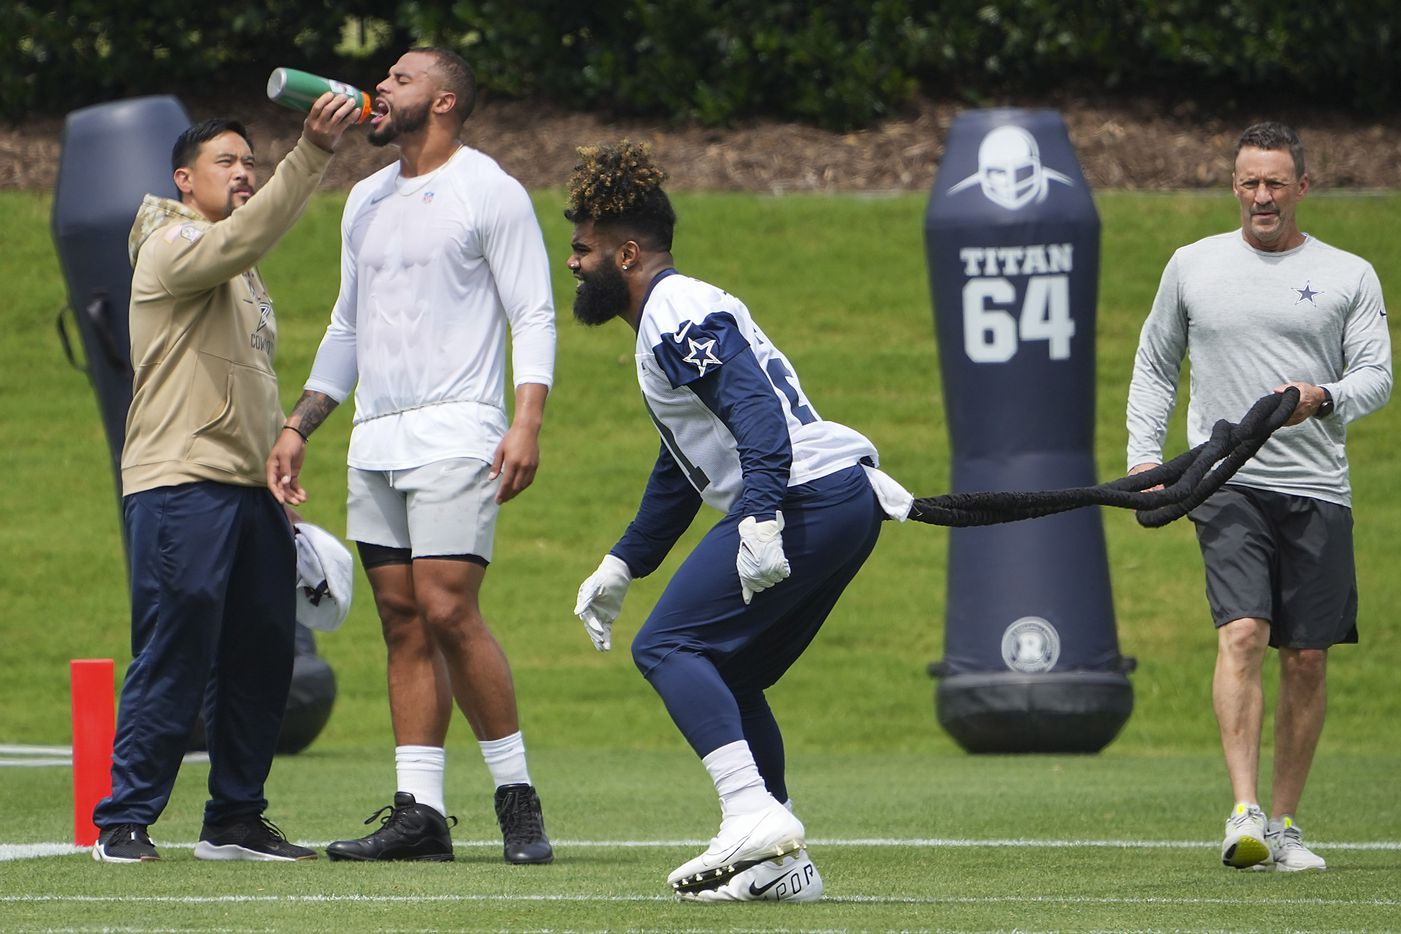 Dallas Cowboys running back Ezekiel Elliott (21) works with a resistance band as quarterback Dak Prescott gets a drink of water during a minicamp practice at The Star on Tuesday, June 8, 2021, in Frisco. (Smiley N. Pool/The Dallas Morning News)